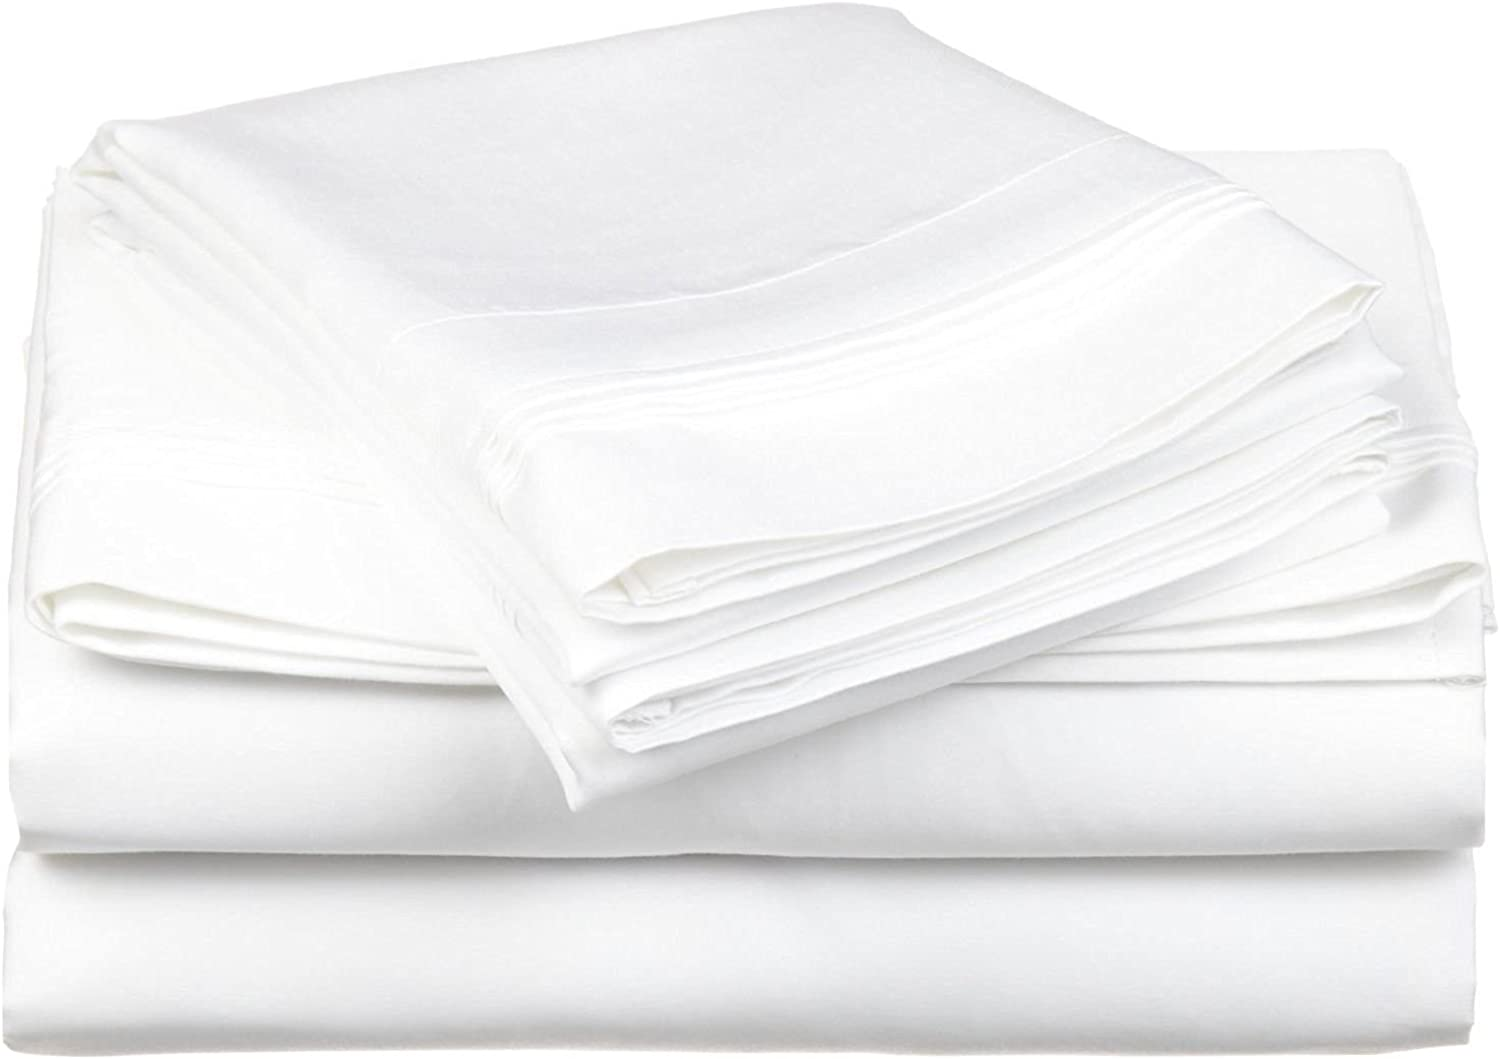 Luxurious Finish Comfortable Sleeper Sofa Bed Sheets Set, Egyptian Cotton - Solid White ( Queen Size 60 x74 x 6  )